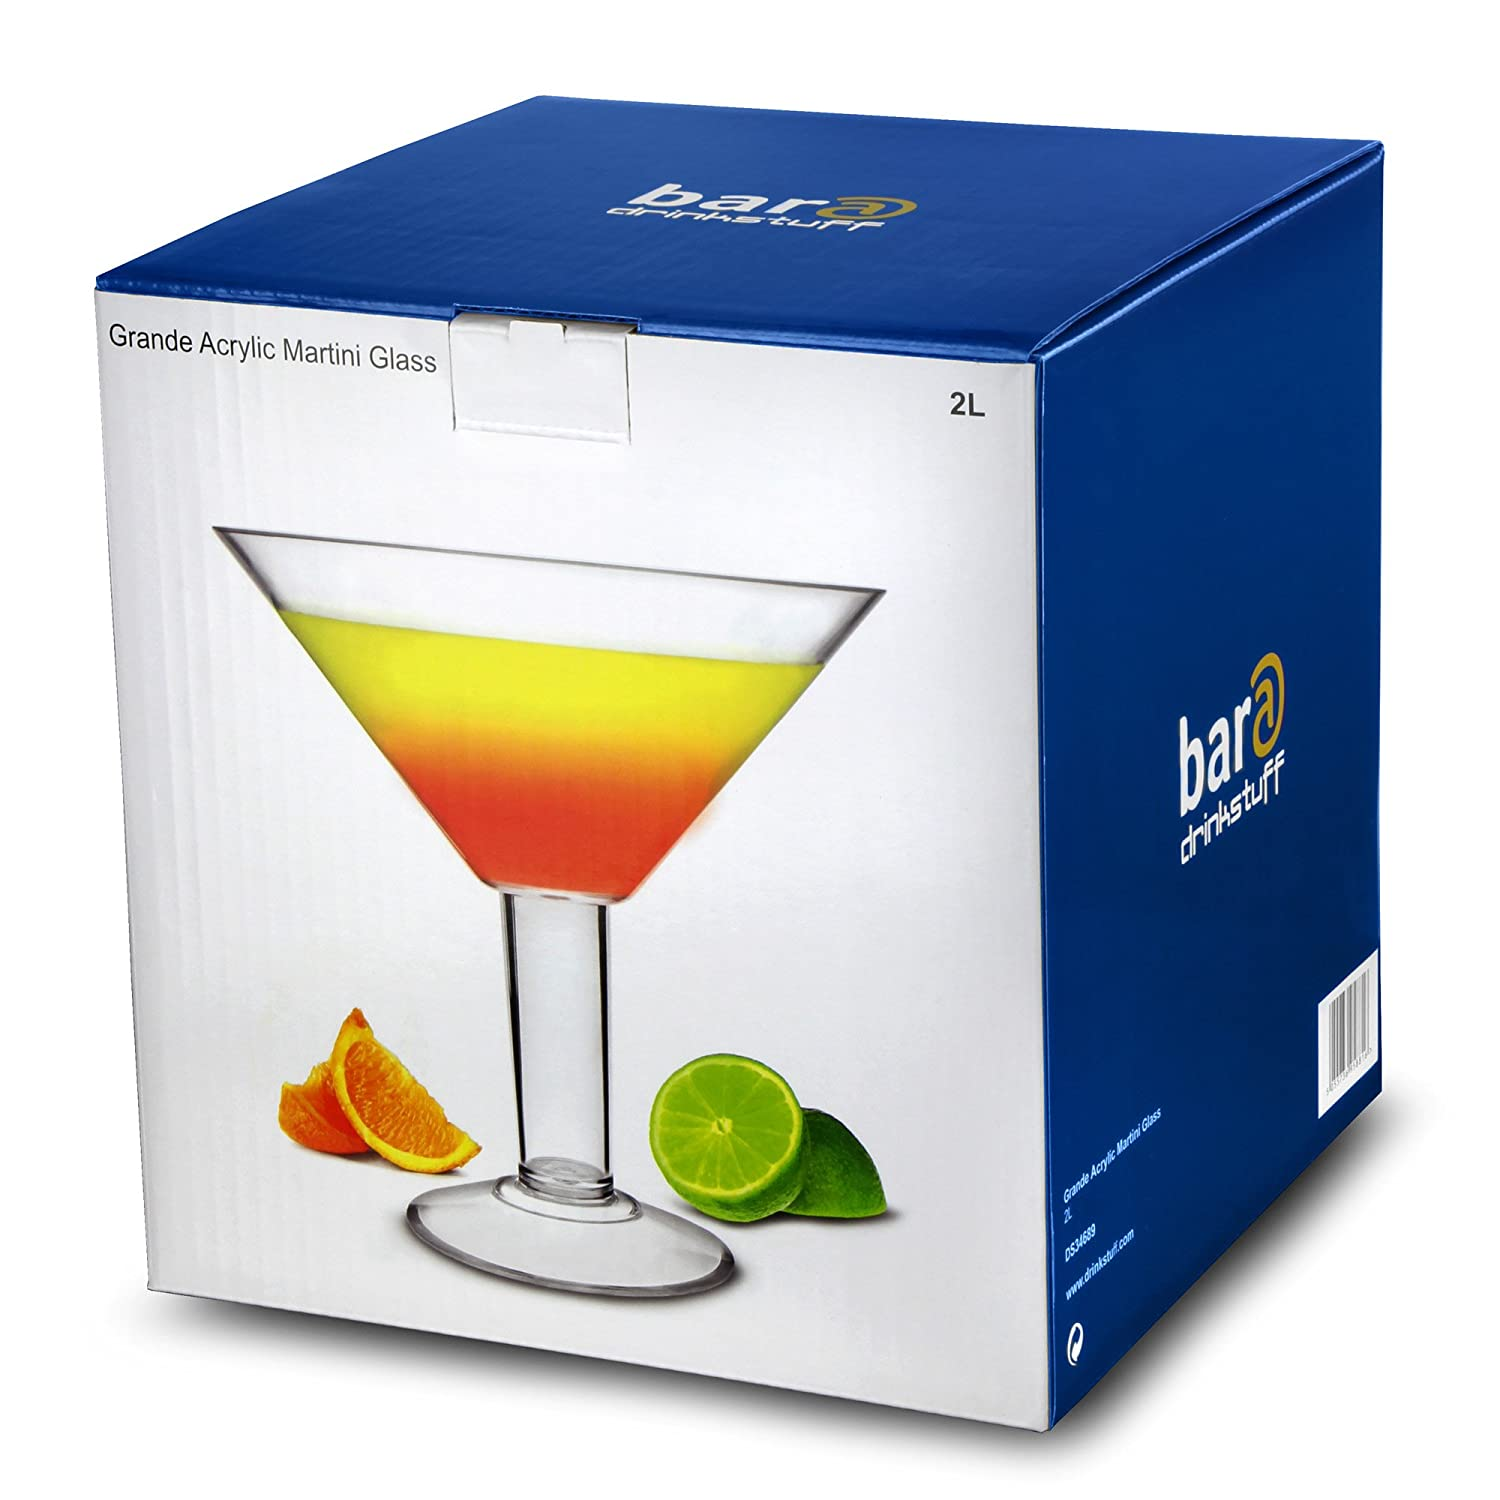 bar@drinkstuff Grande Acrylic Martini Glass 73oz/2ltr - 25cm Oversized Plastic Cocktail Glass Ideal for Centrepieces